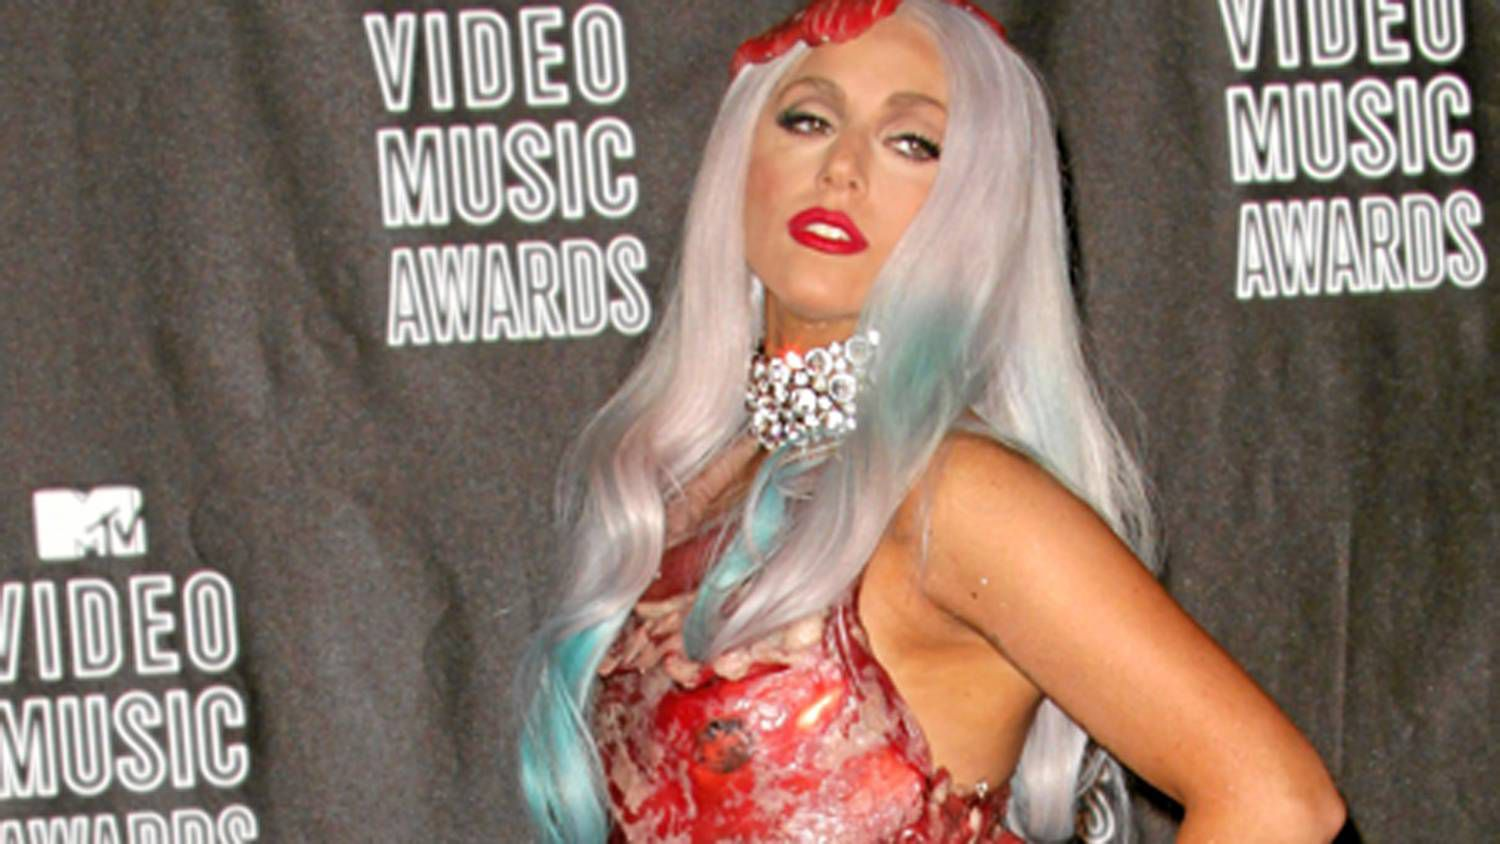 a45b05a70e1 Did Lady Gaga really wear slabs of meat as a dress  - The Globe and Mail